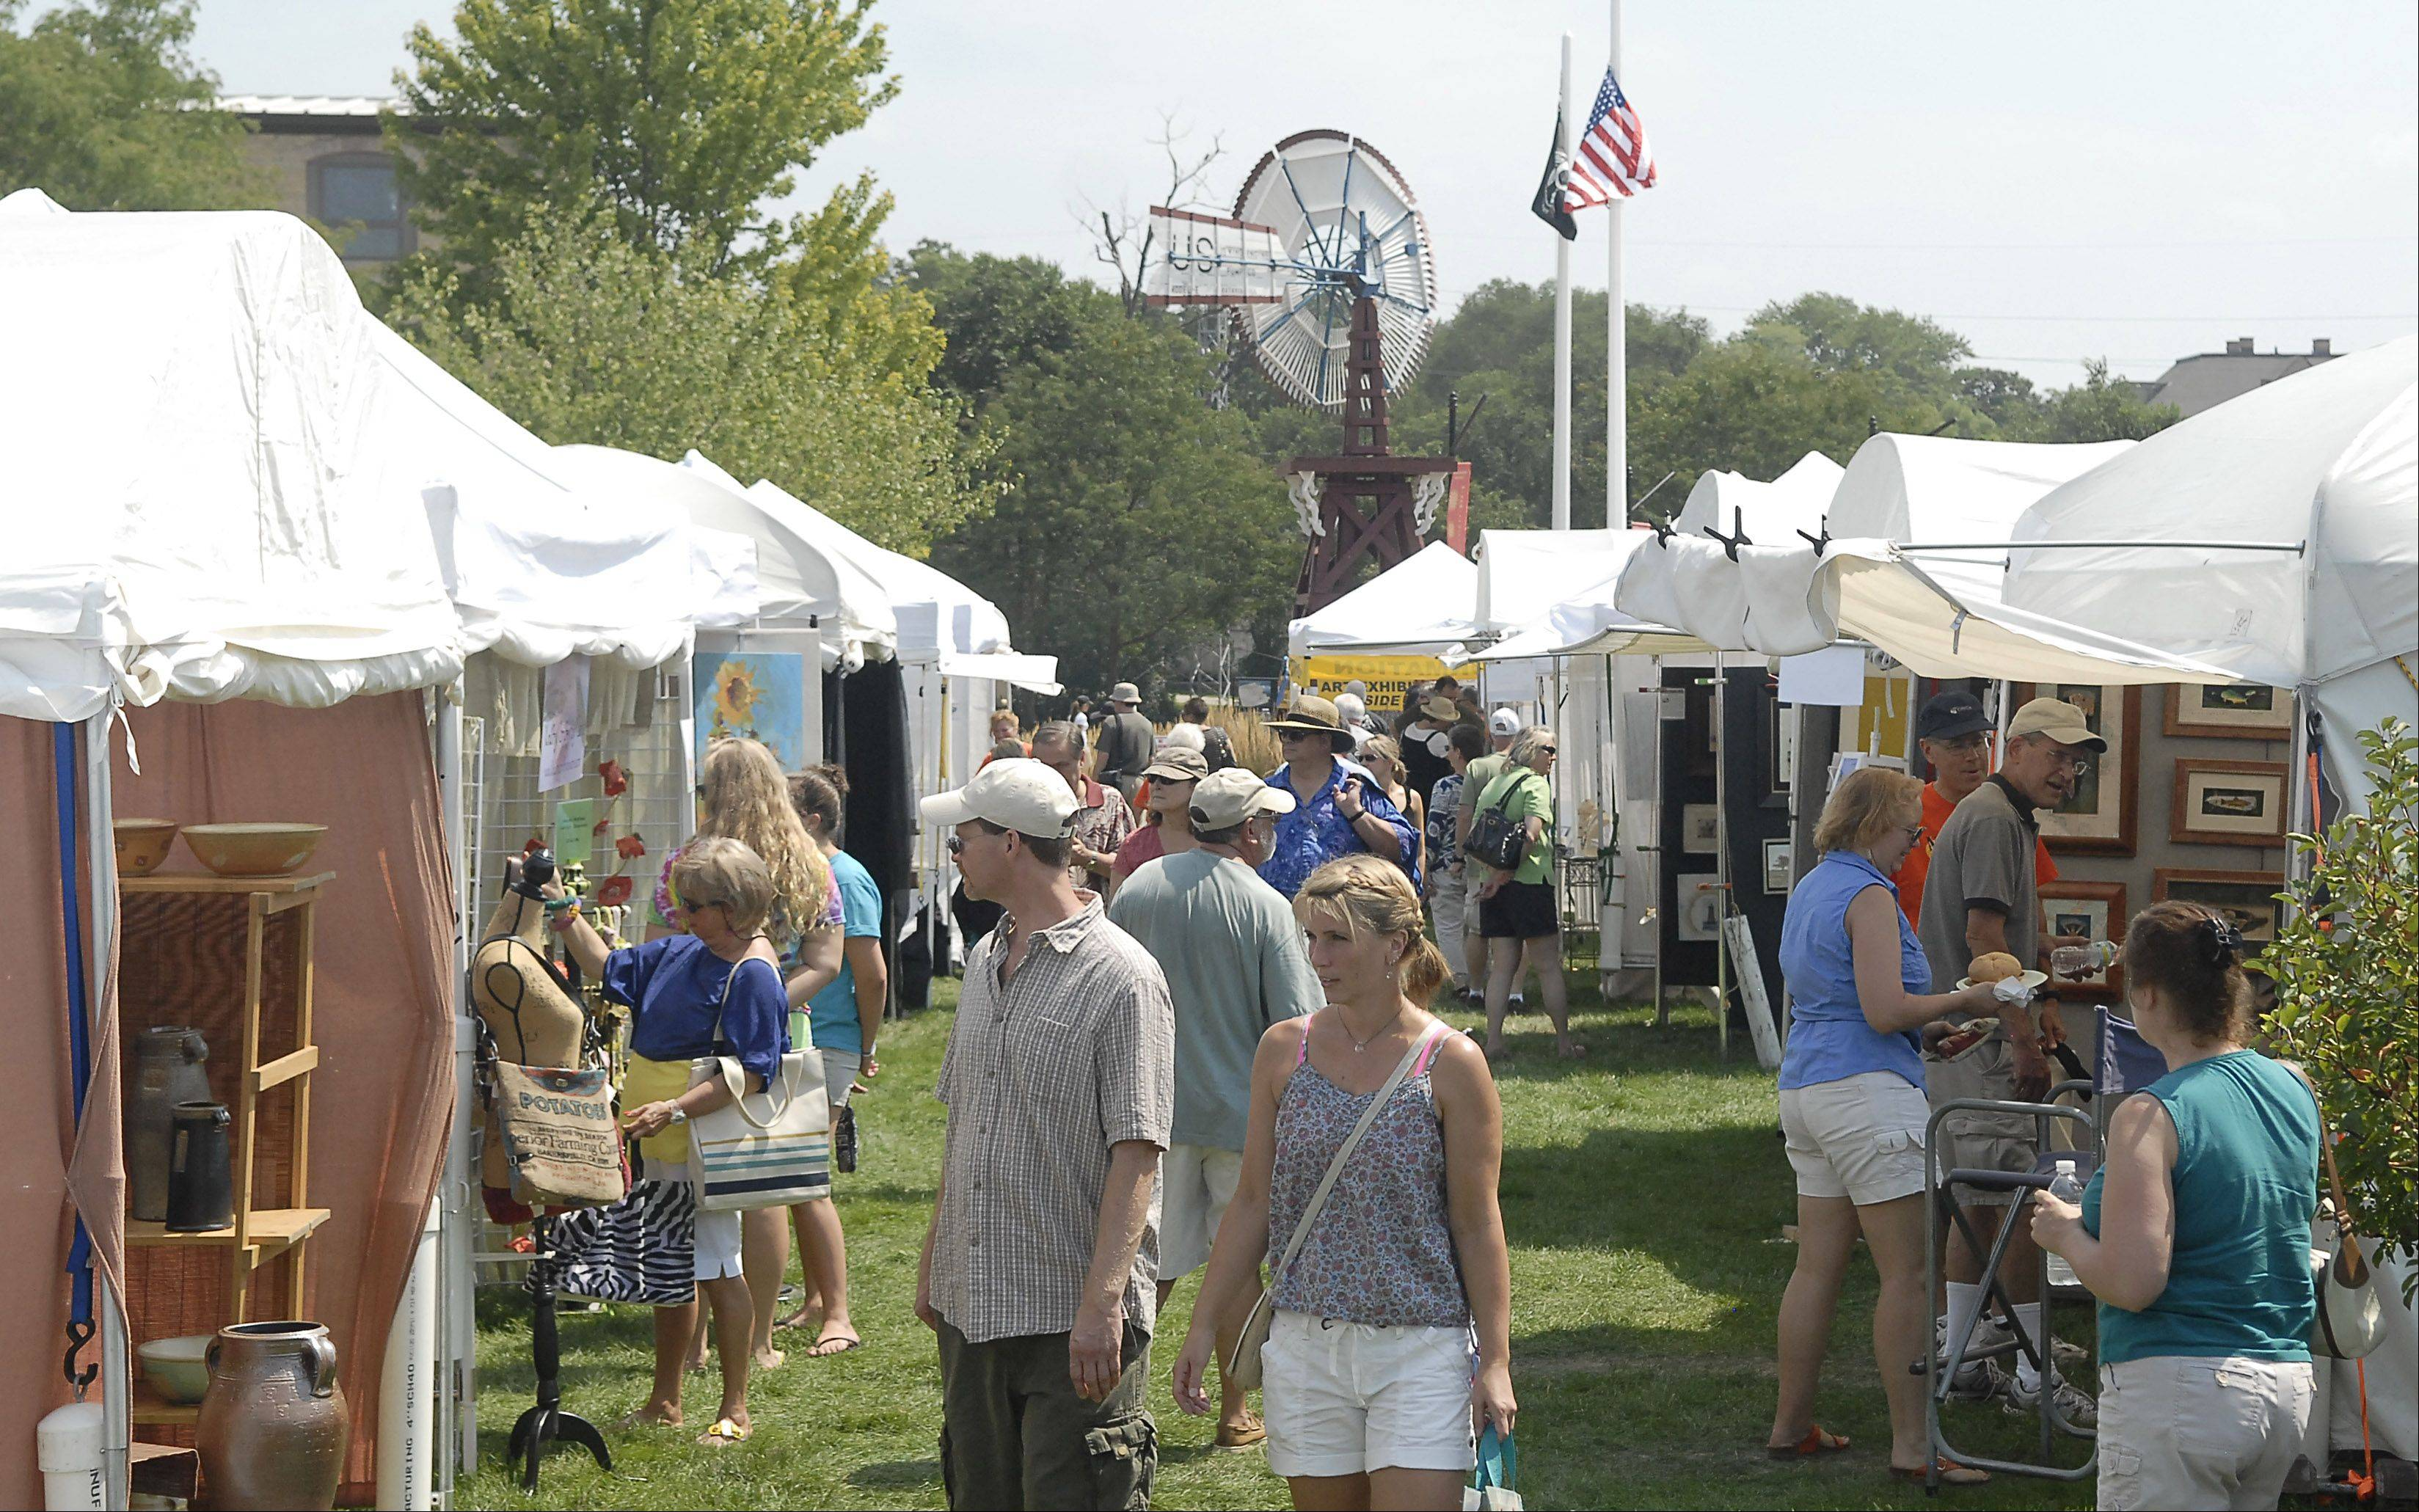 Batavia's Art in Your Eye festival will be along the Batavia Riverwalk this weekend, Sept. 21-22.